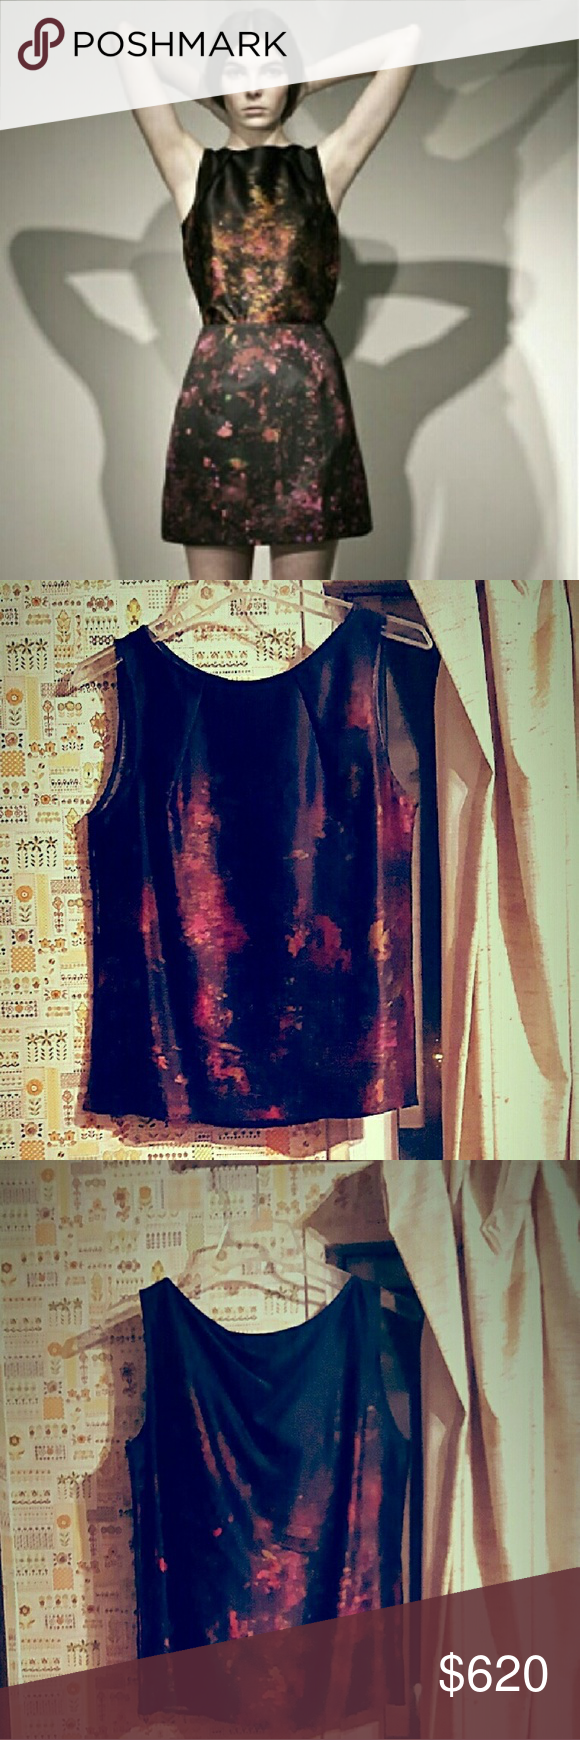 Erdem Silk Printed Top Never worn. Original tags attached. Pre fall look. Size: UK10/US6. Allover purple and pink stardust galaxy print. Boatneck. Slips on. 100% silk. Dry clean. Made in    Portugal. Matching skirt also available in my closet. erdem Tops Camisoles